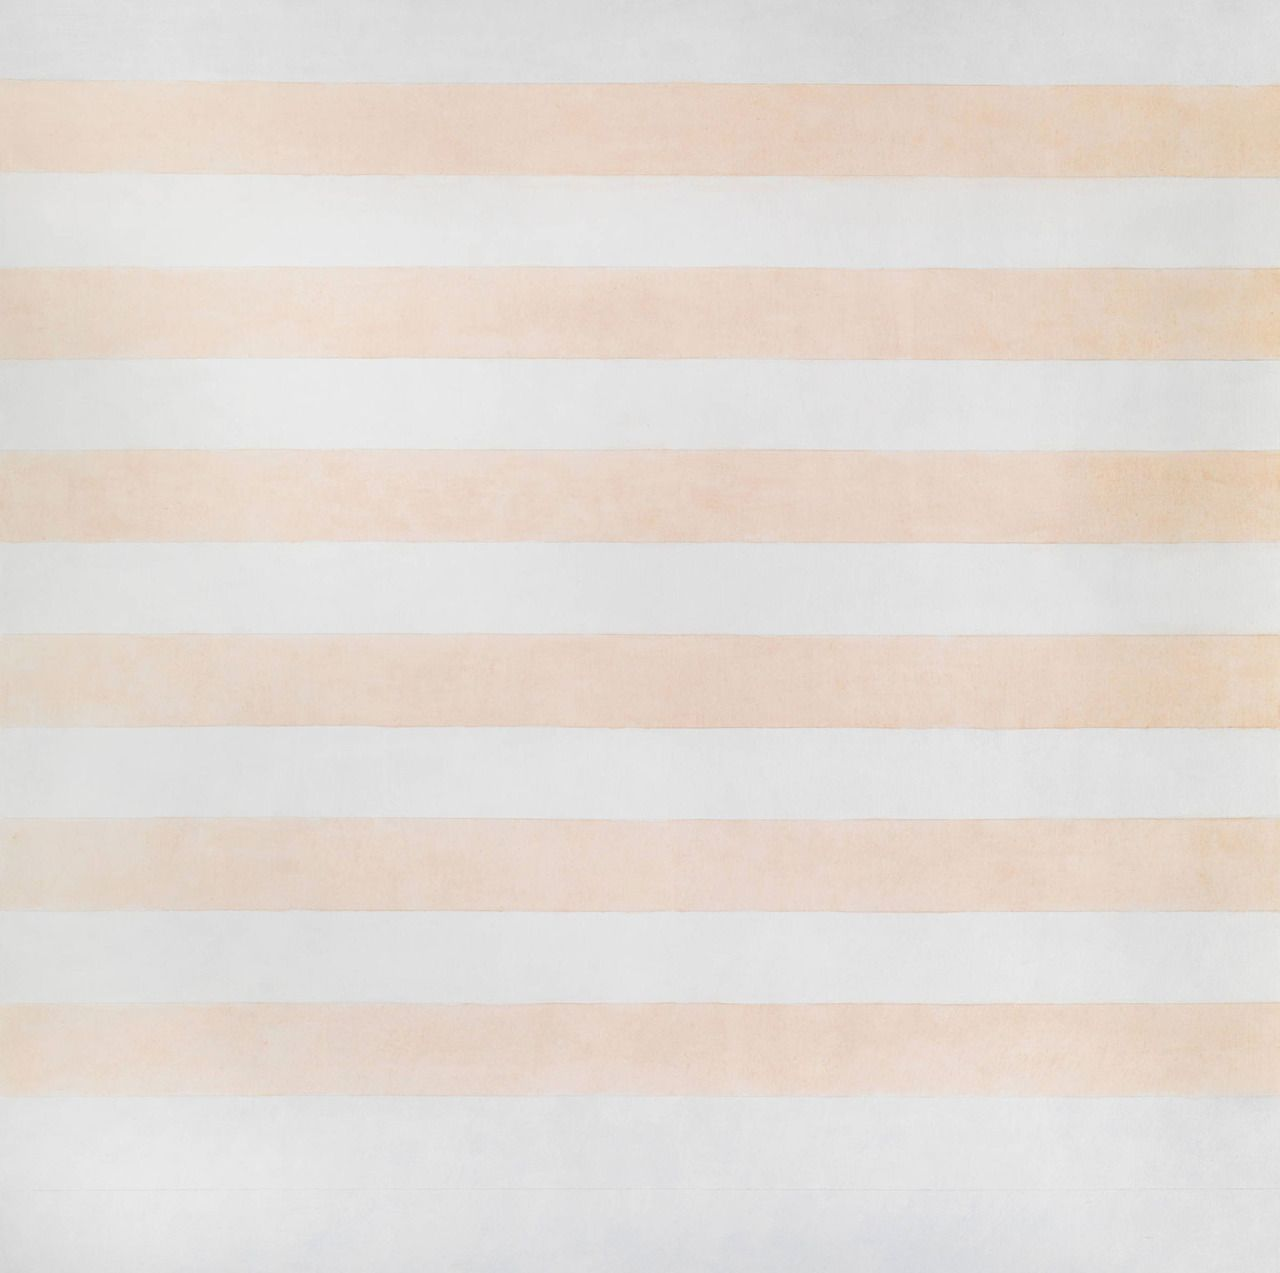 moodboardmix:    Agnes Martin, Happy Holiday, 1999.Tate / National Galleries of Scotland © estate of Agnes Martin.